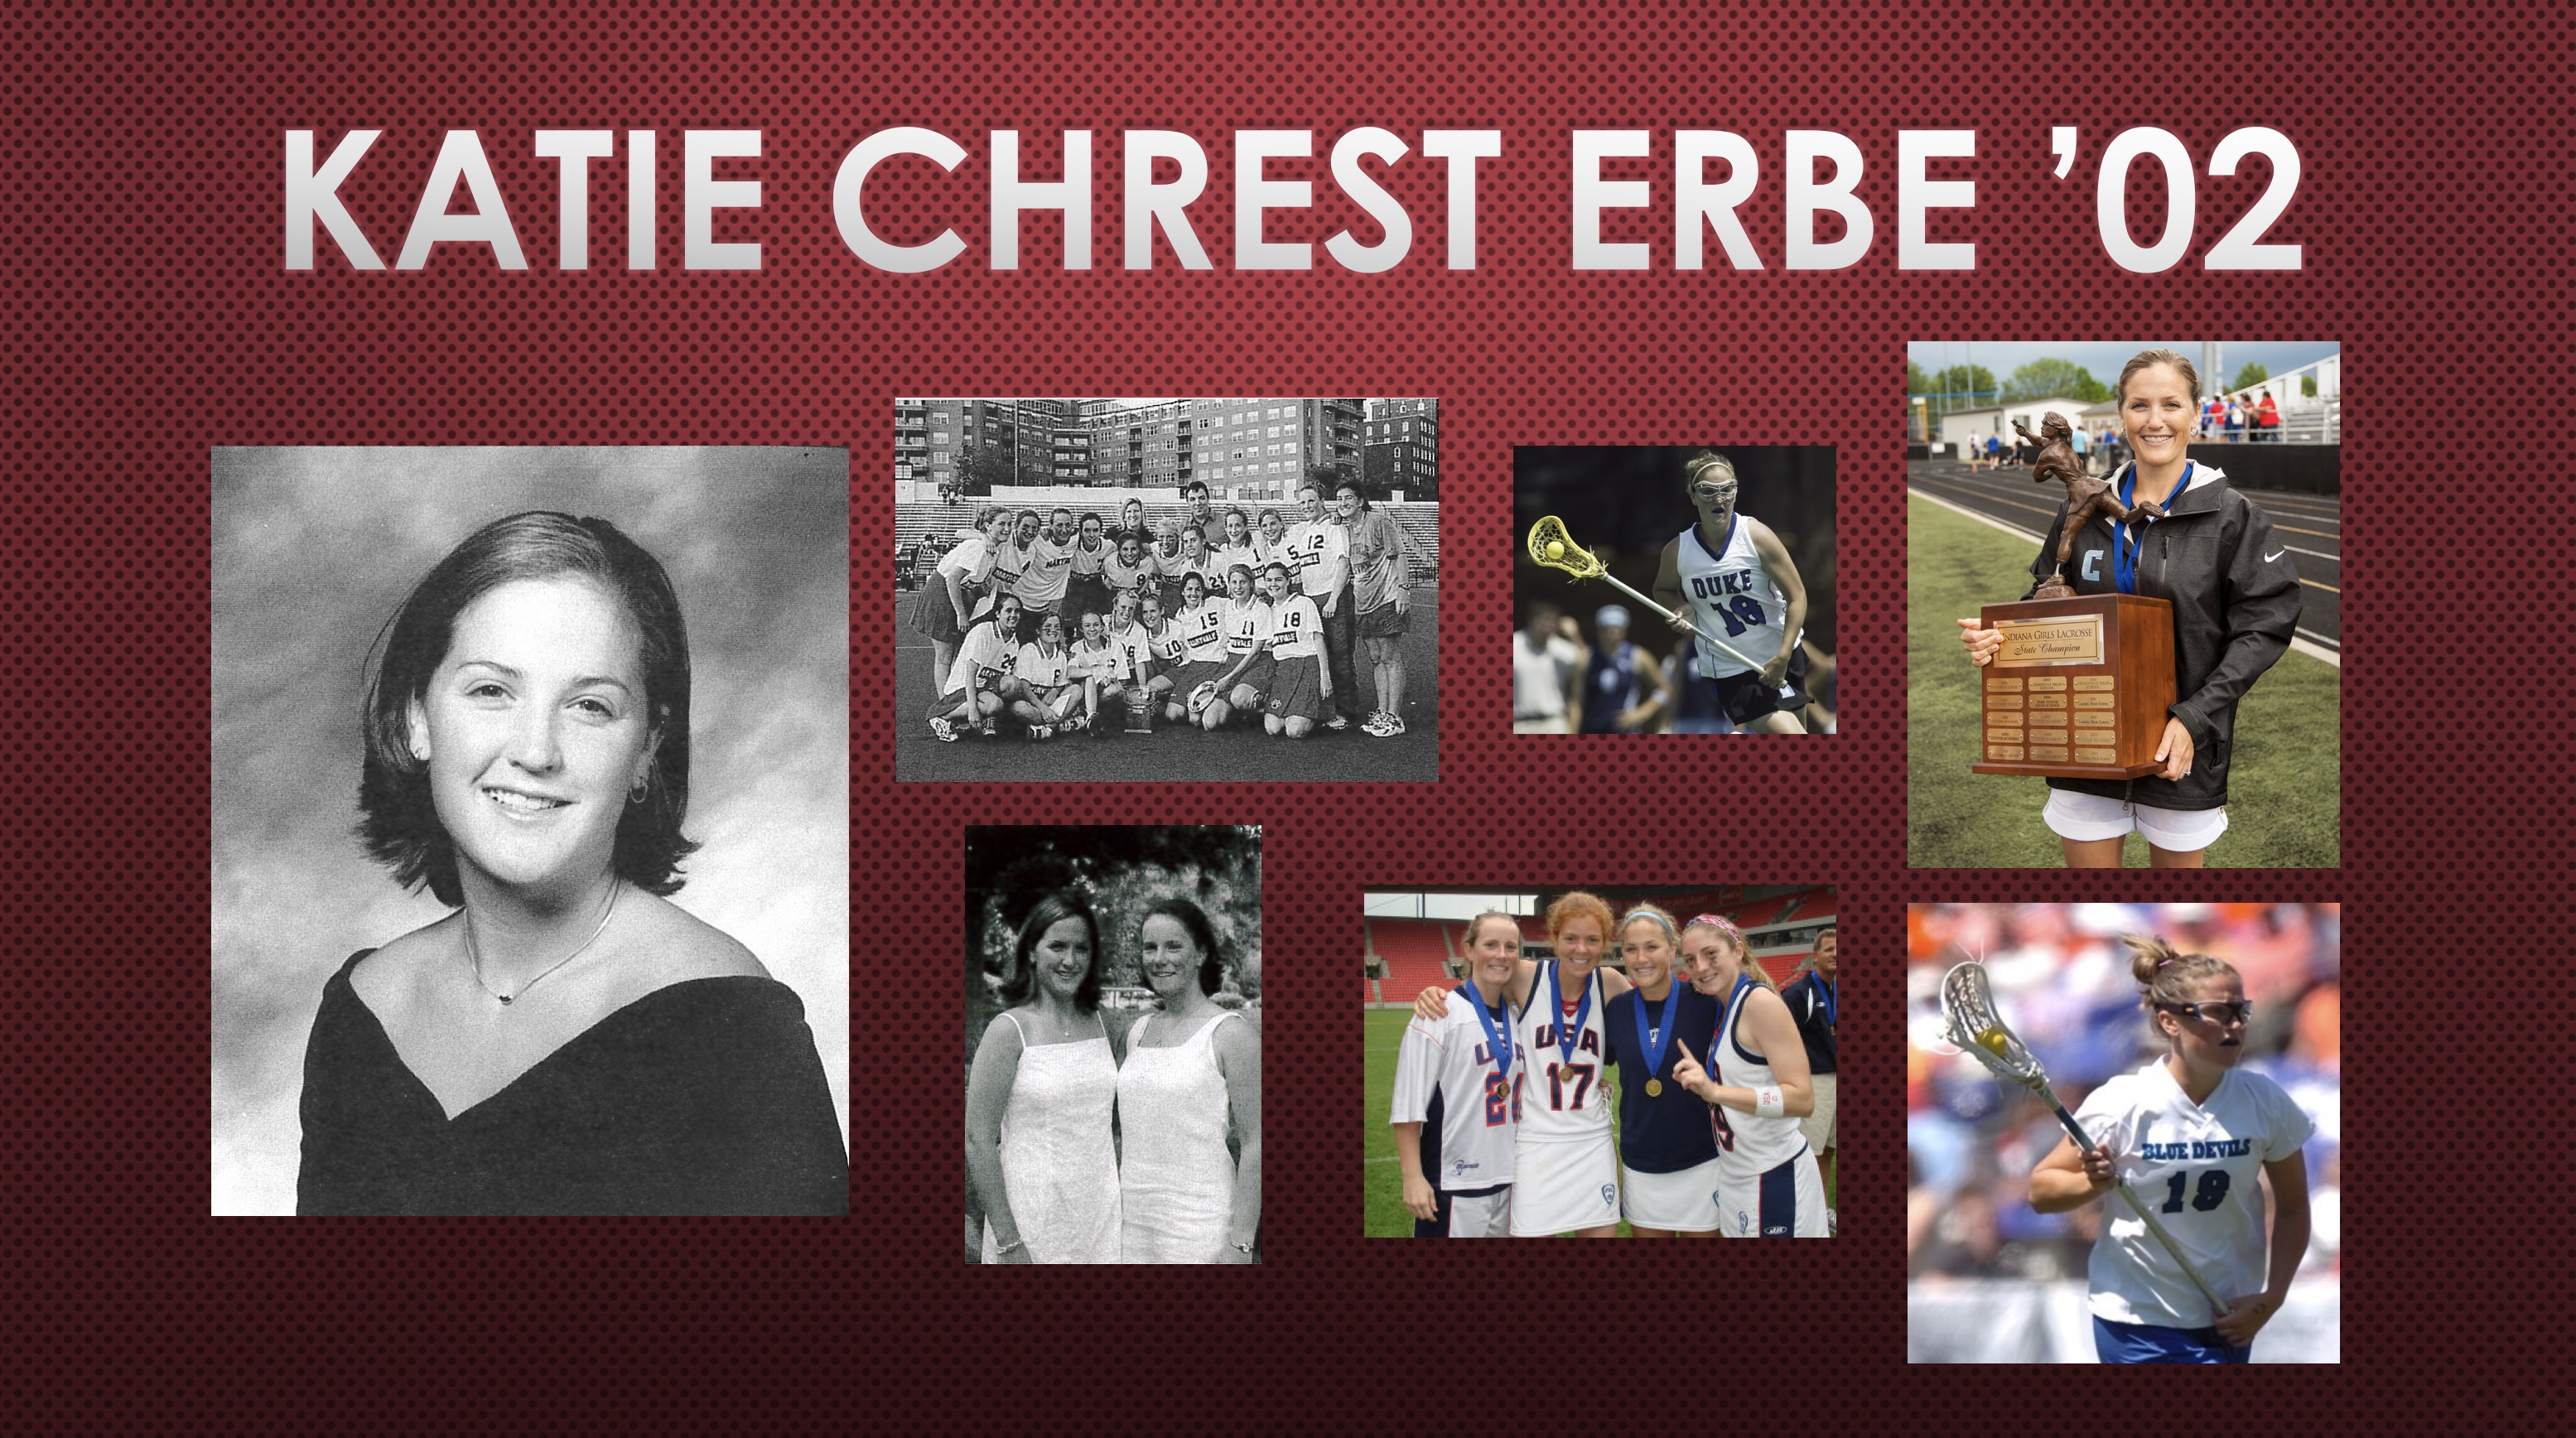 2018 Athletic Hall of Fame Inductee: Katie Chrest Erbe '02